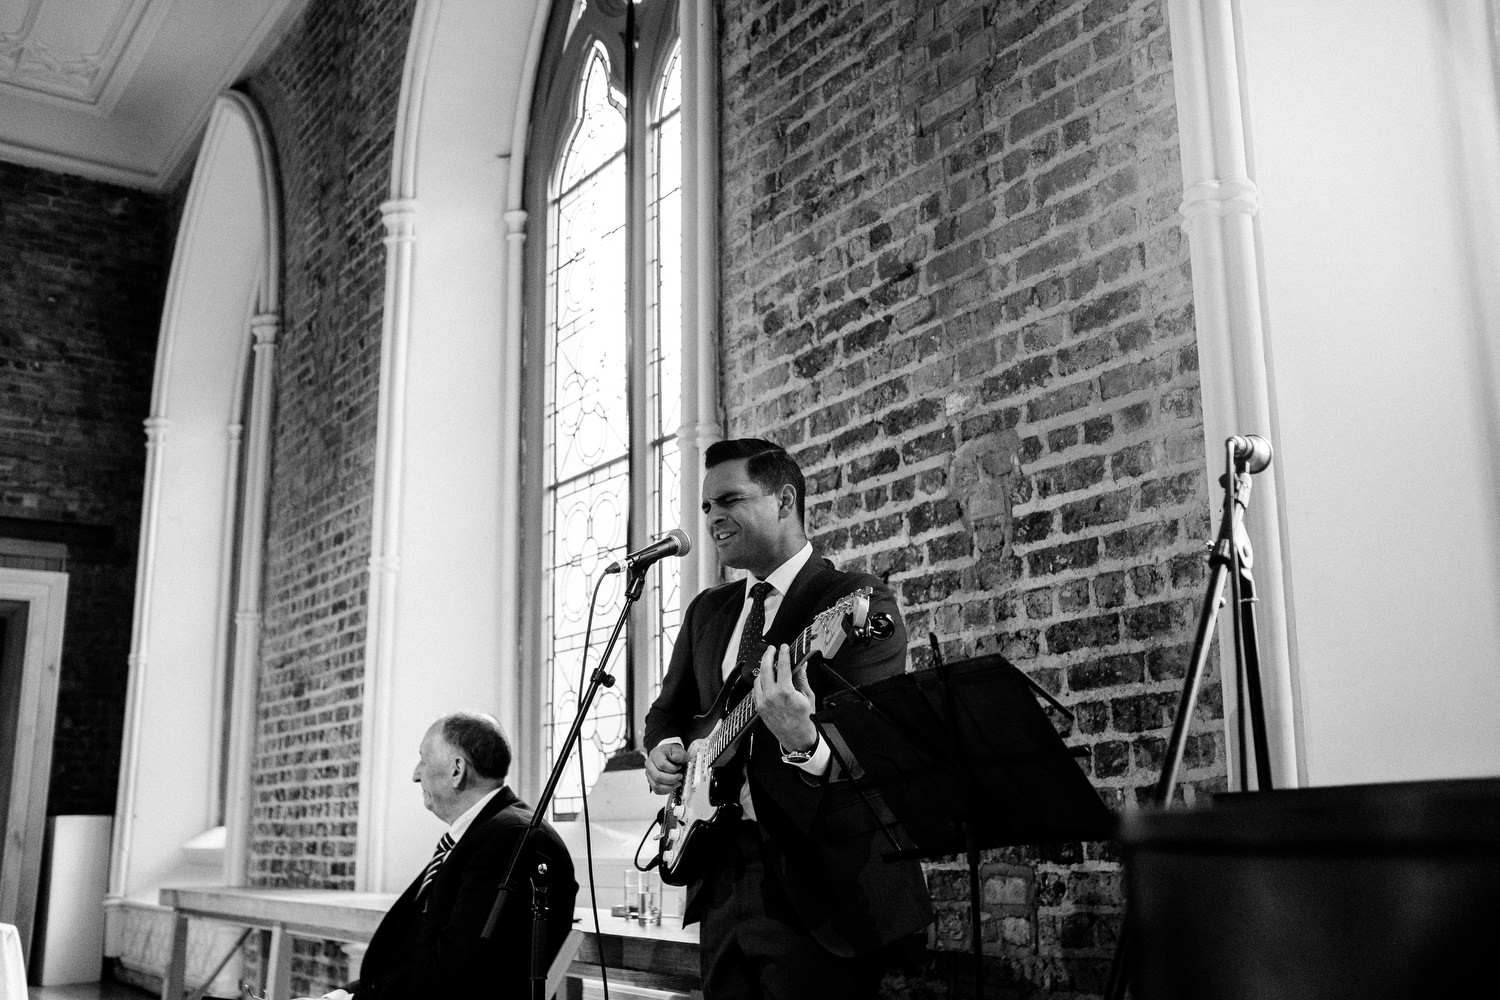 dmp0280_dublin_alley_photography_david_mcclelland_ceremony_humanist_documentary_theatre_smock_wedding_photographer